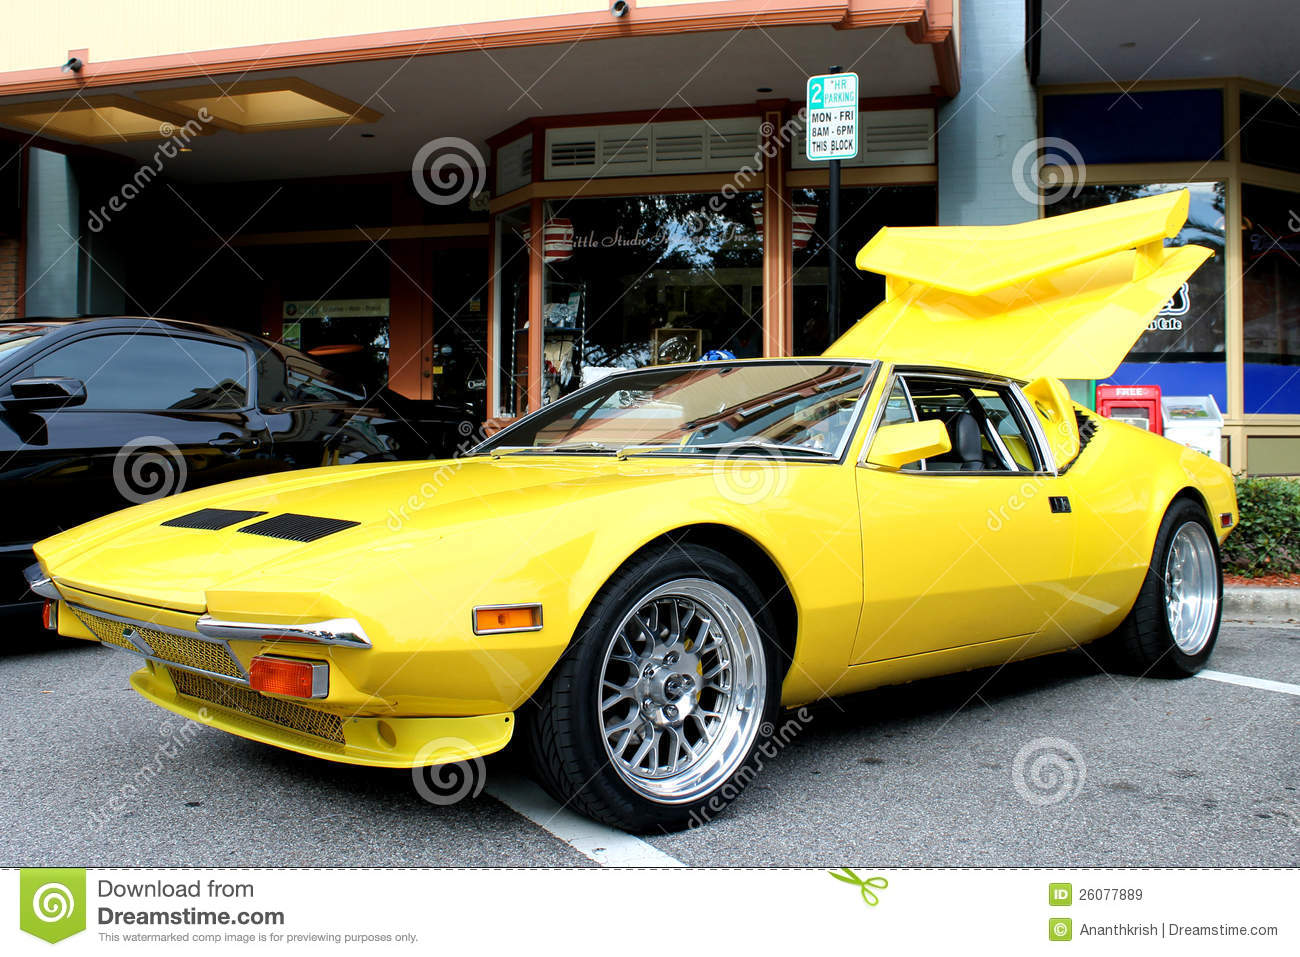 The Old Sports Car Stock Image. Image Of Collection, Coupe